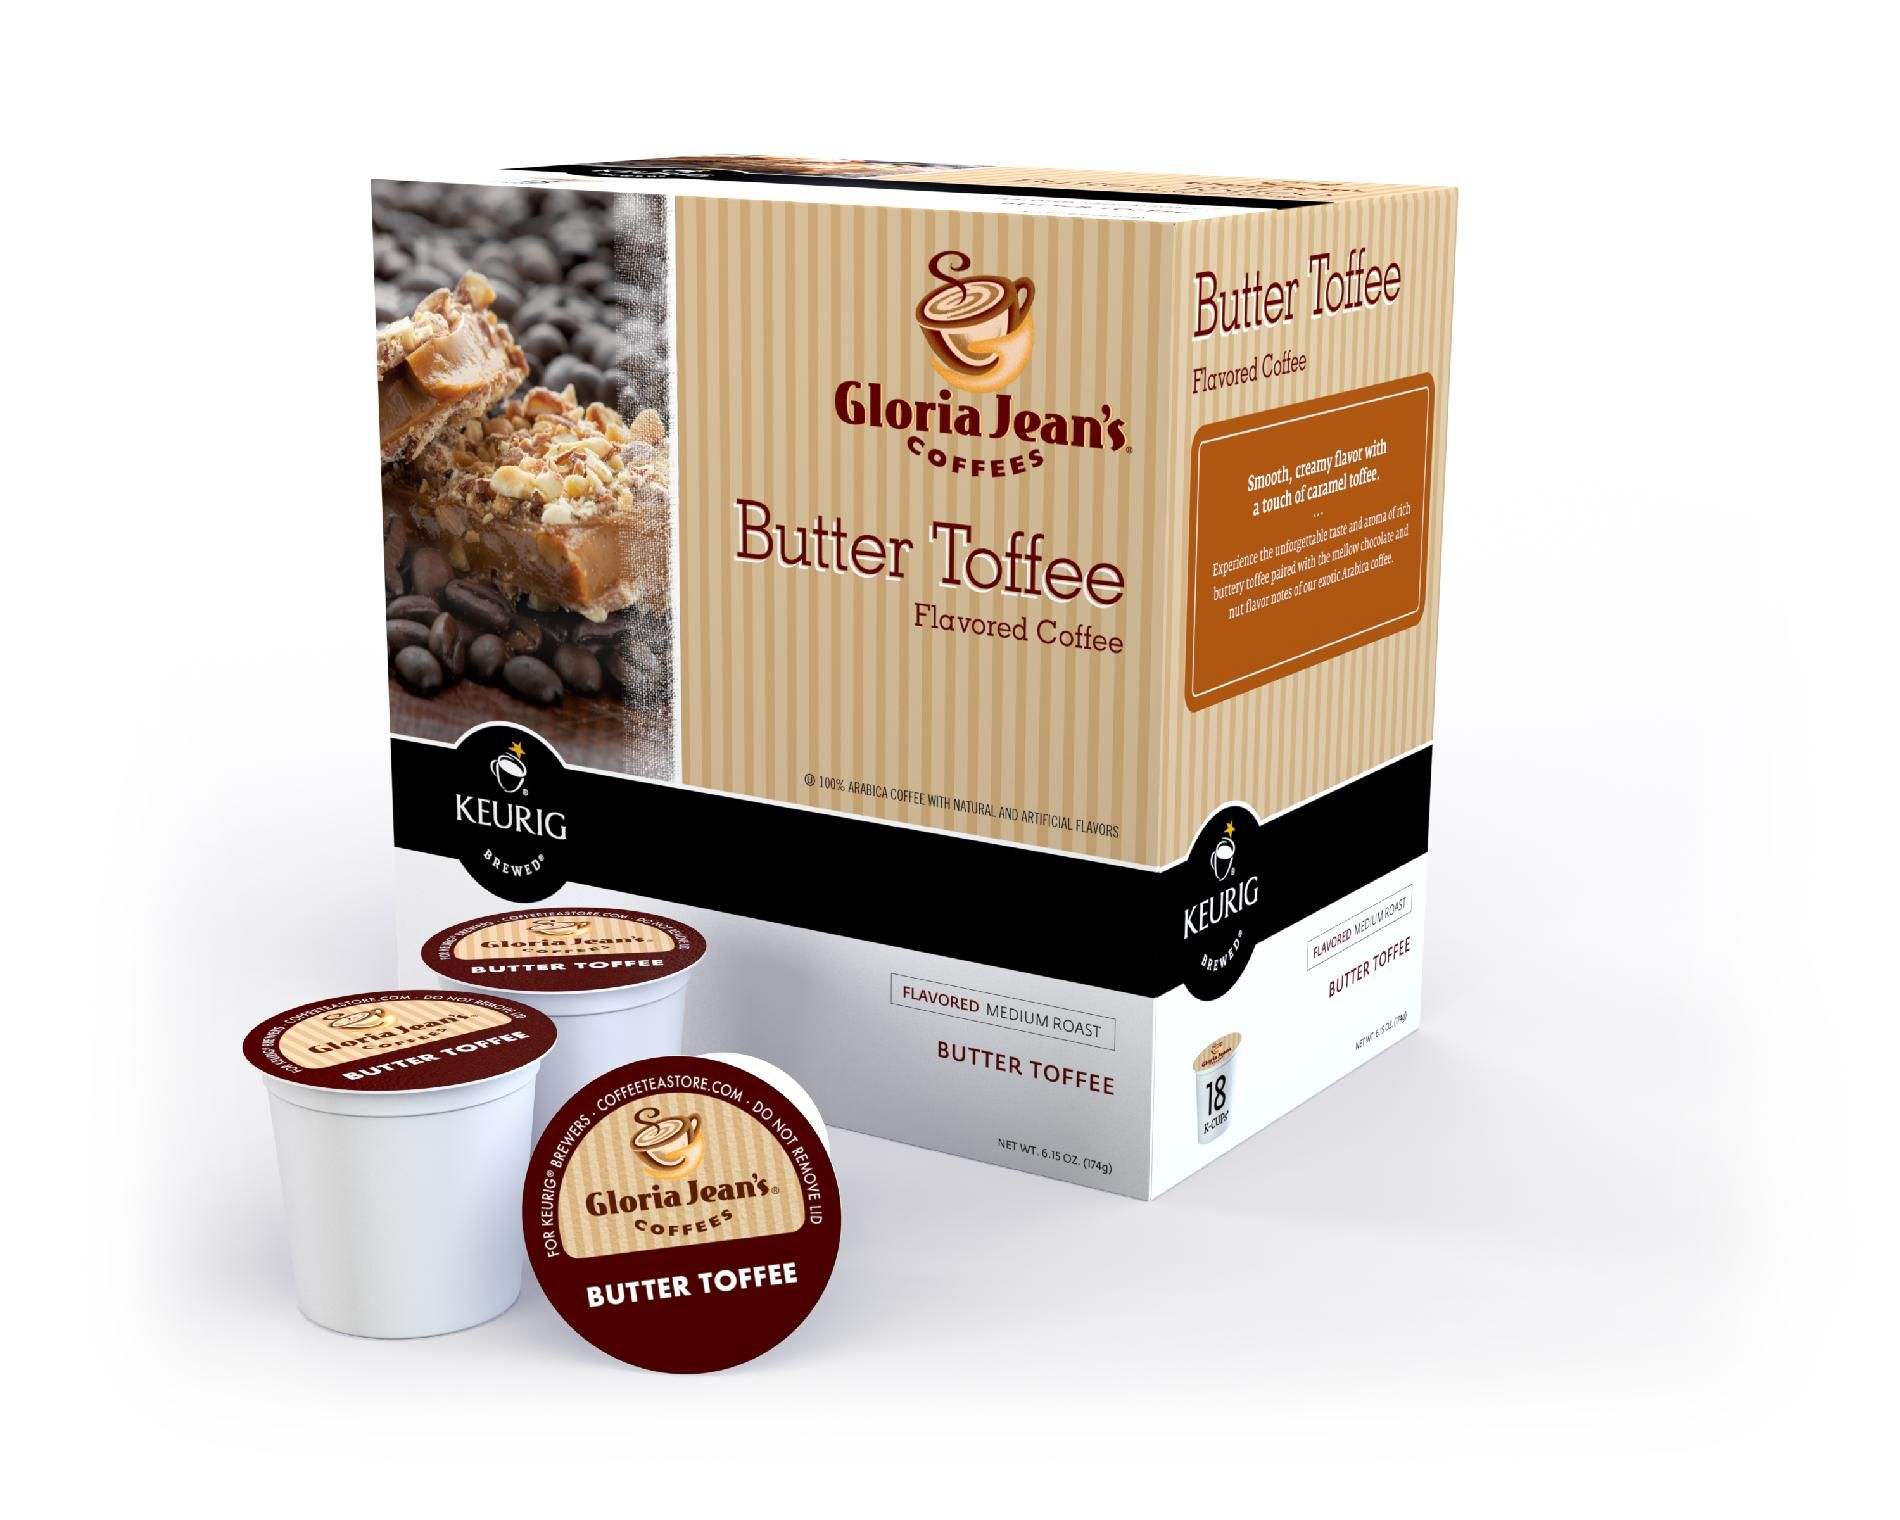 Keurig Gloria Jean's Butter Toffee Coffee 18 Count K-Cups